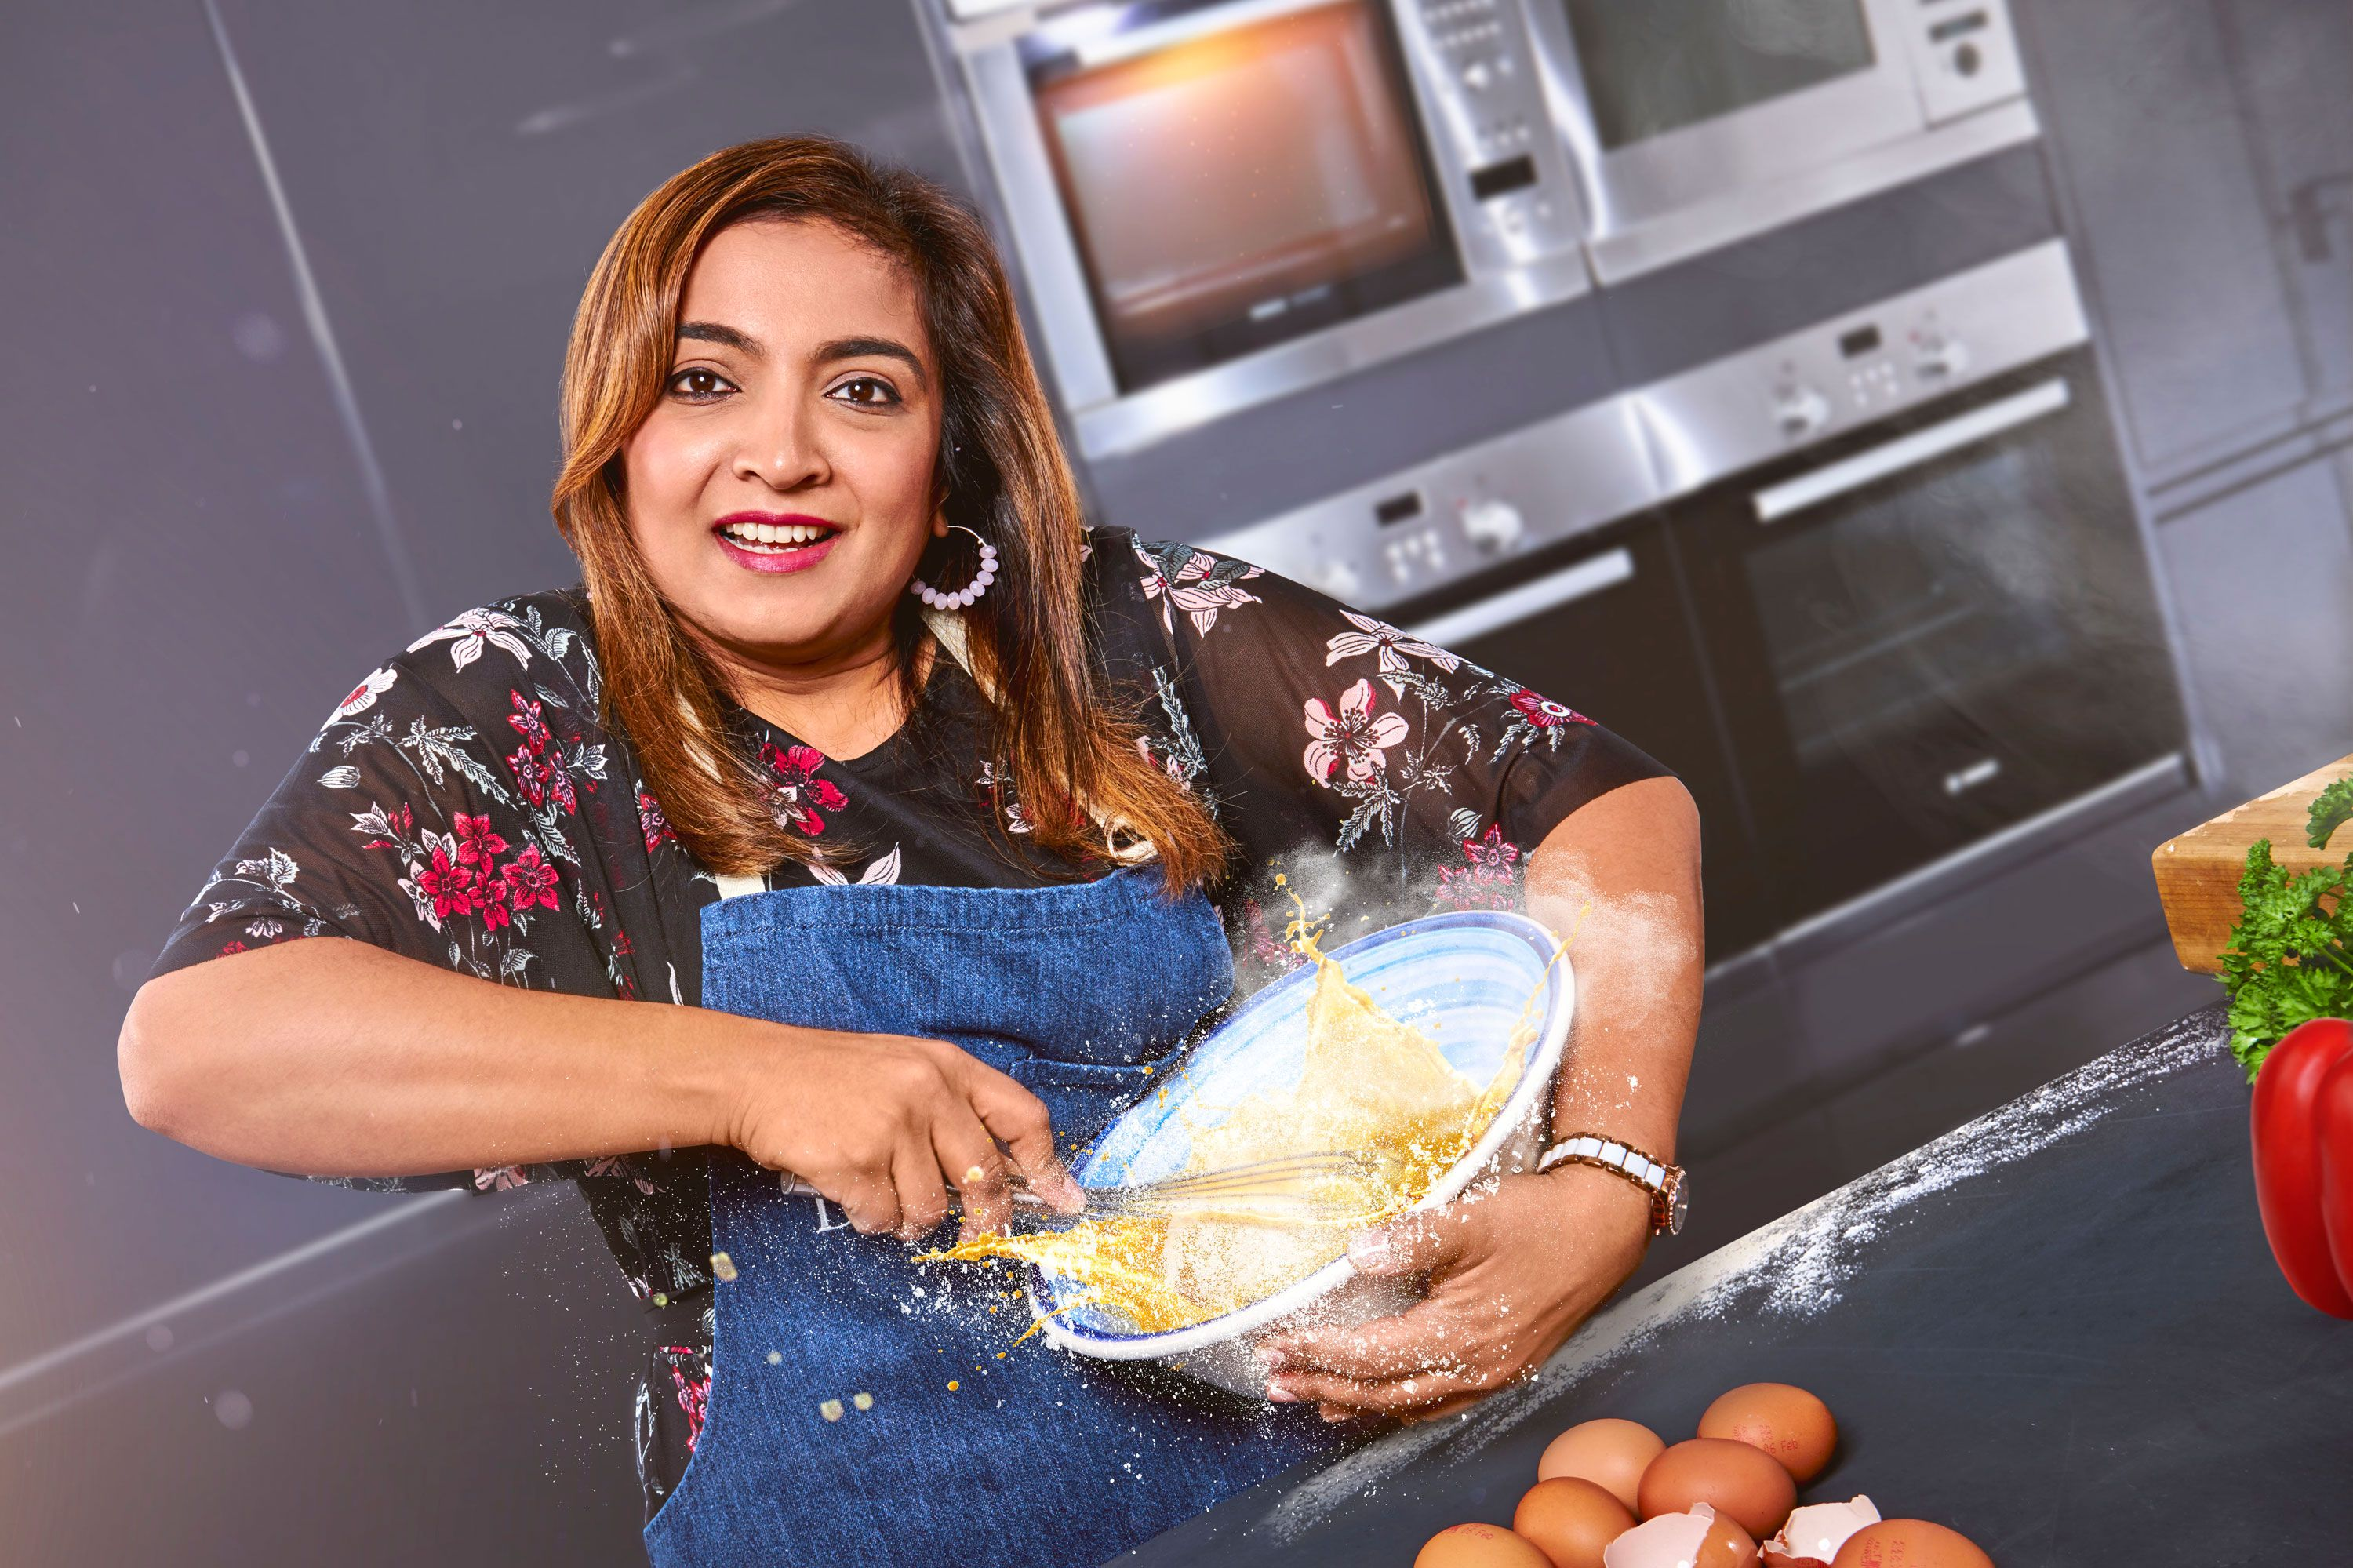 Britain's Best Home Cook: Meet the 10 contestants hoping to impress